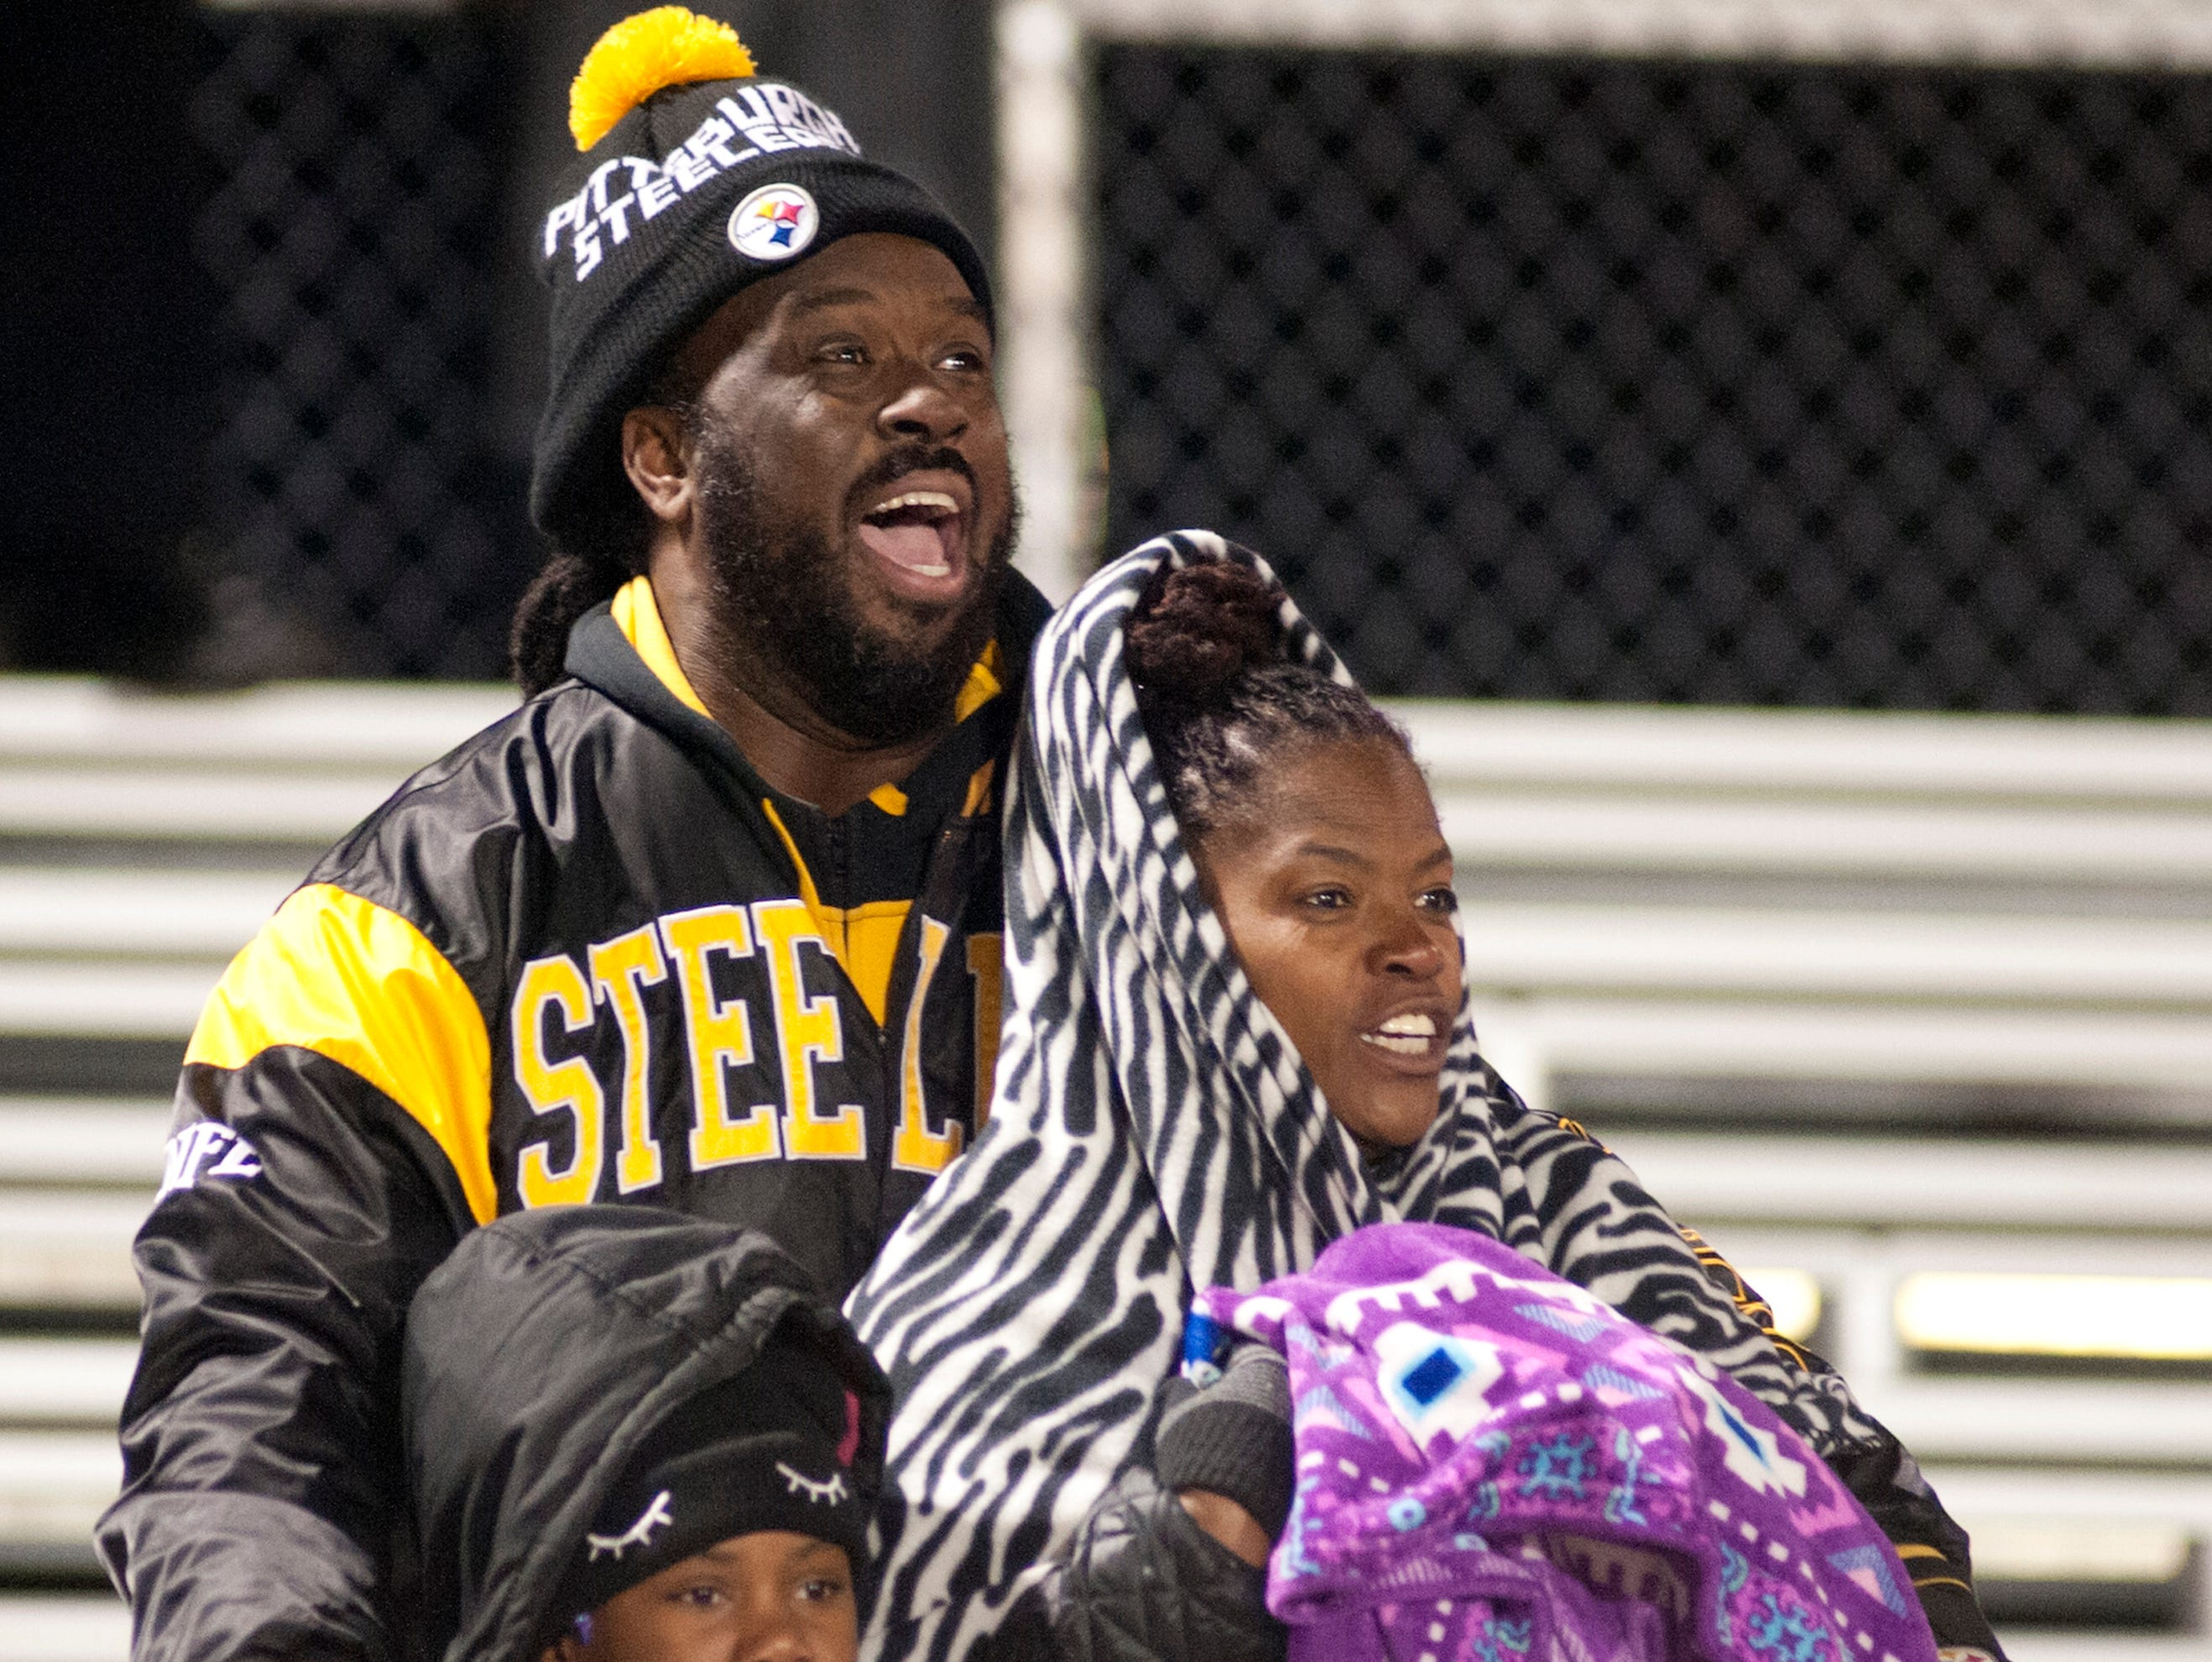 Fern Creek fans bundle up from the cold to watch their team take on Oldham County in the Class 5A Region 2 semifinal at Fern Creek. Nov. 9, 2018